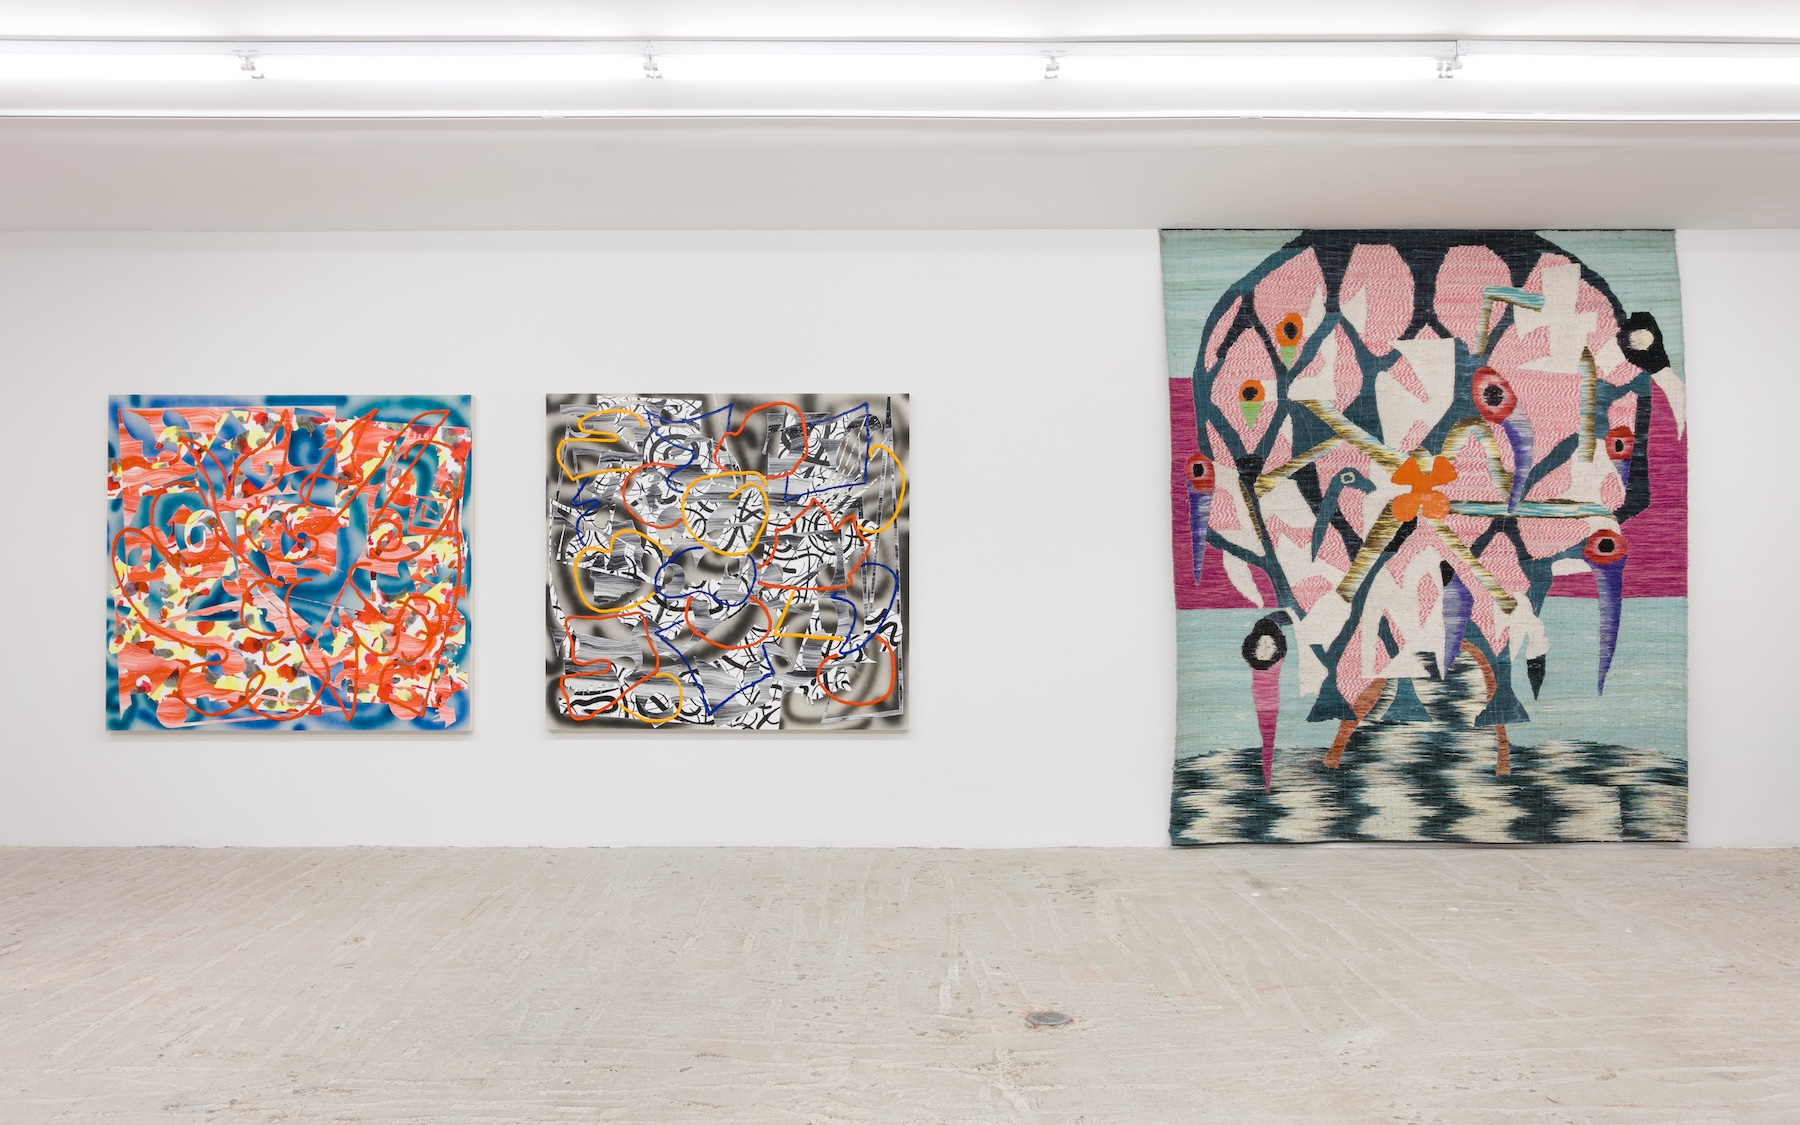 Trudy Benson   TT52   Installation view at  Lyles & King  New York, US  June 8 - July 28, 2017